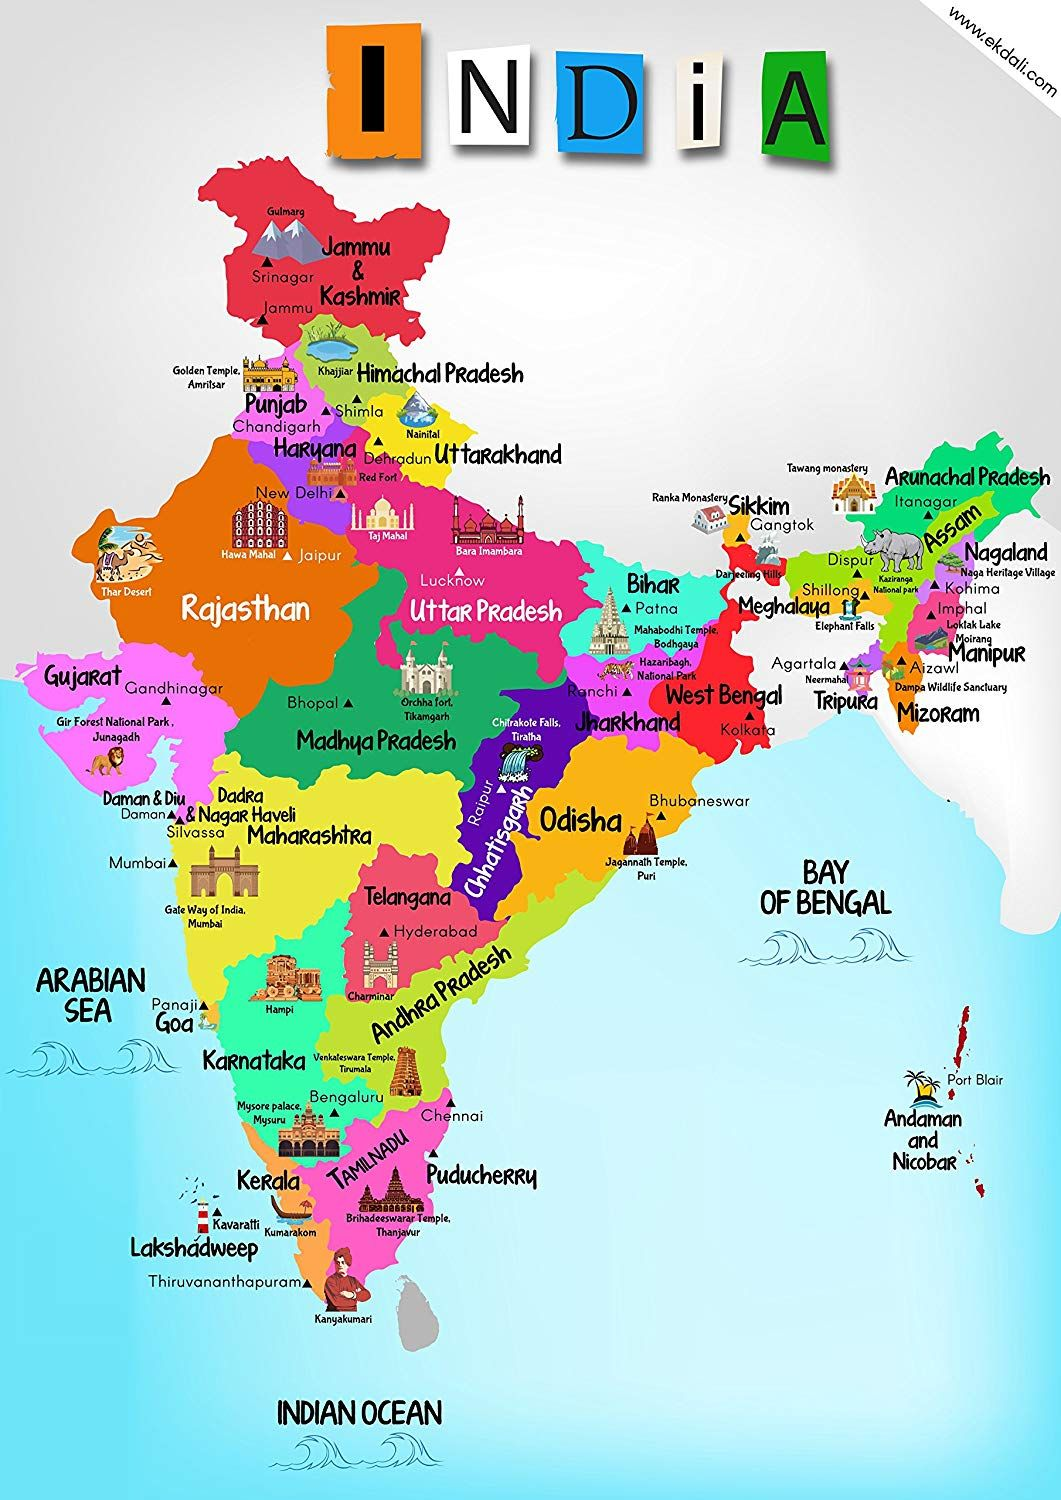 India Map 2020 Hd From Pinterest 1